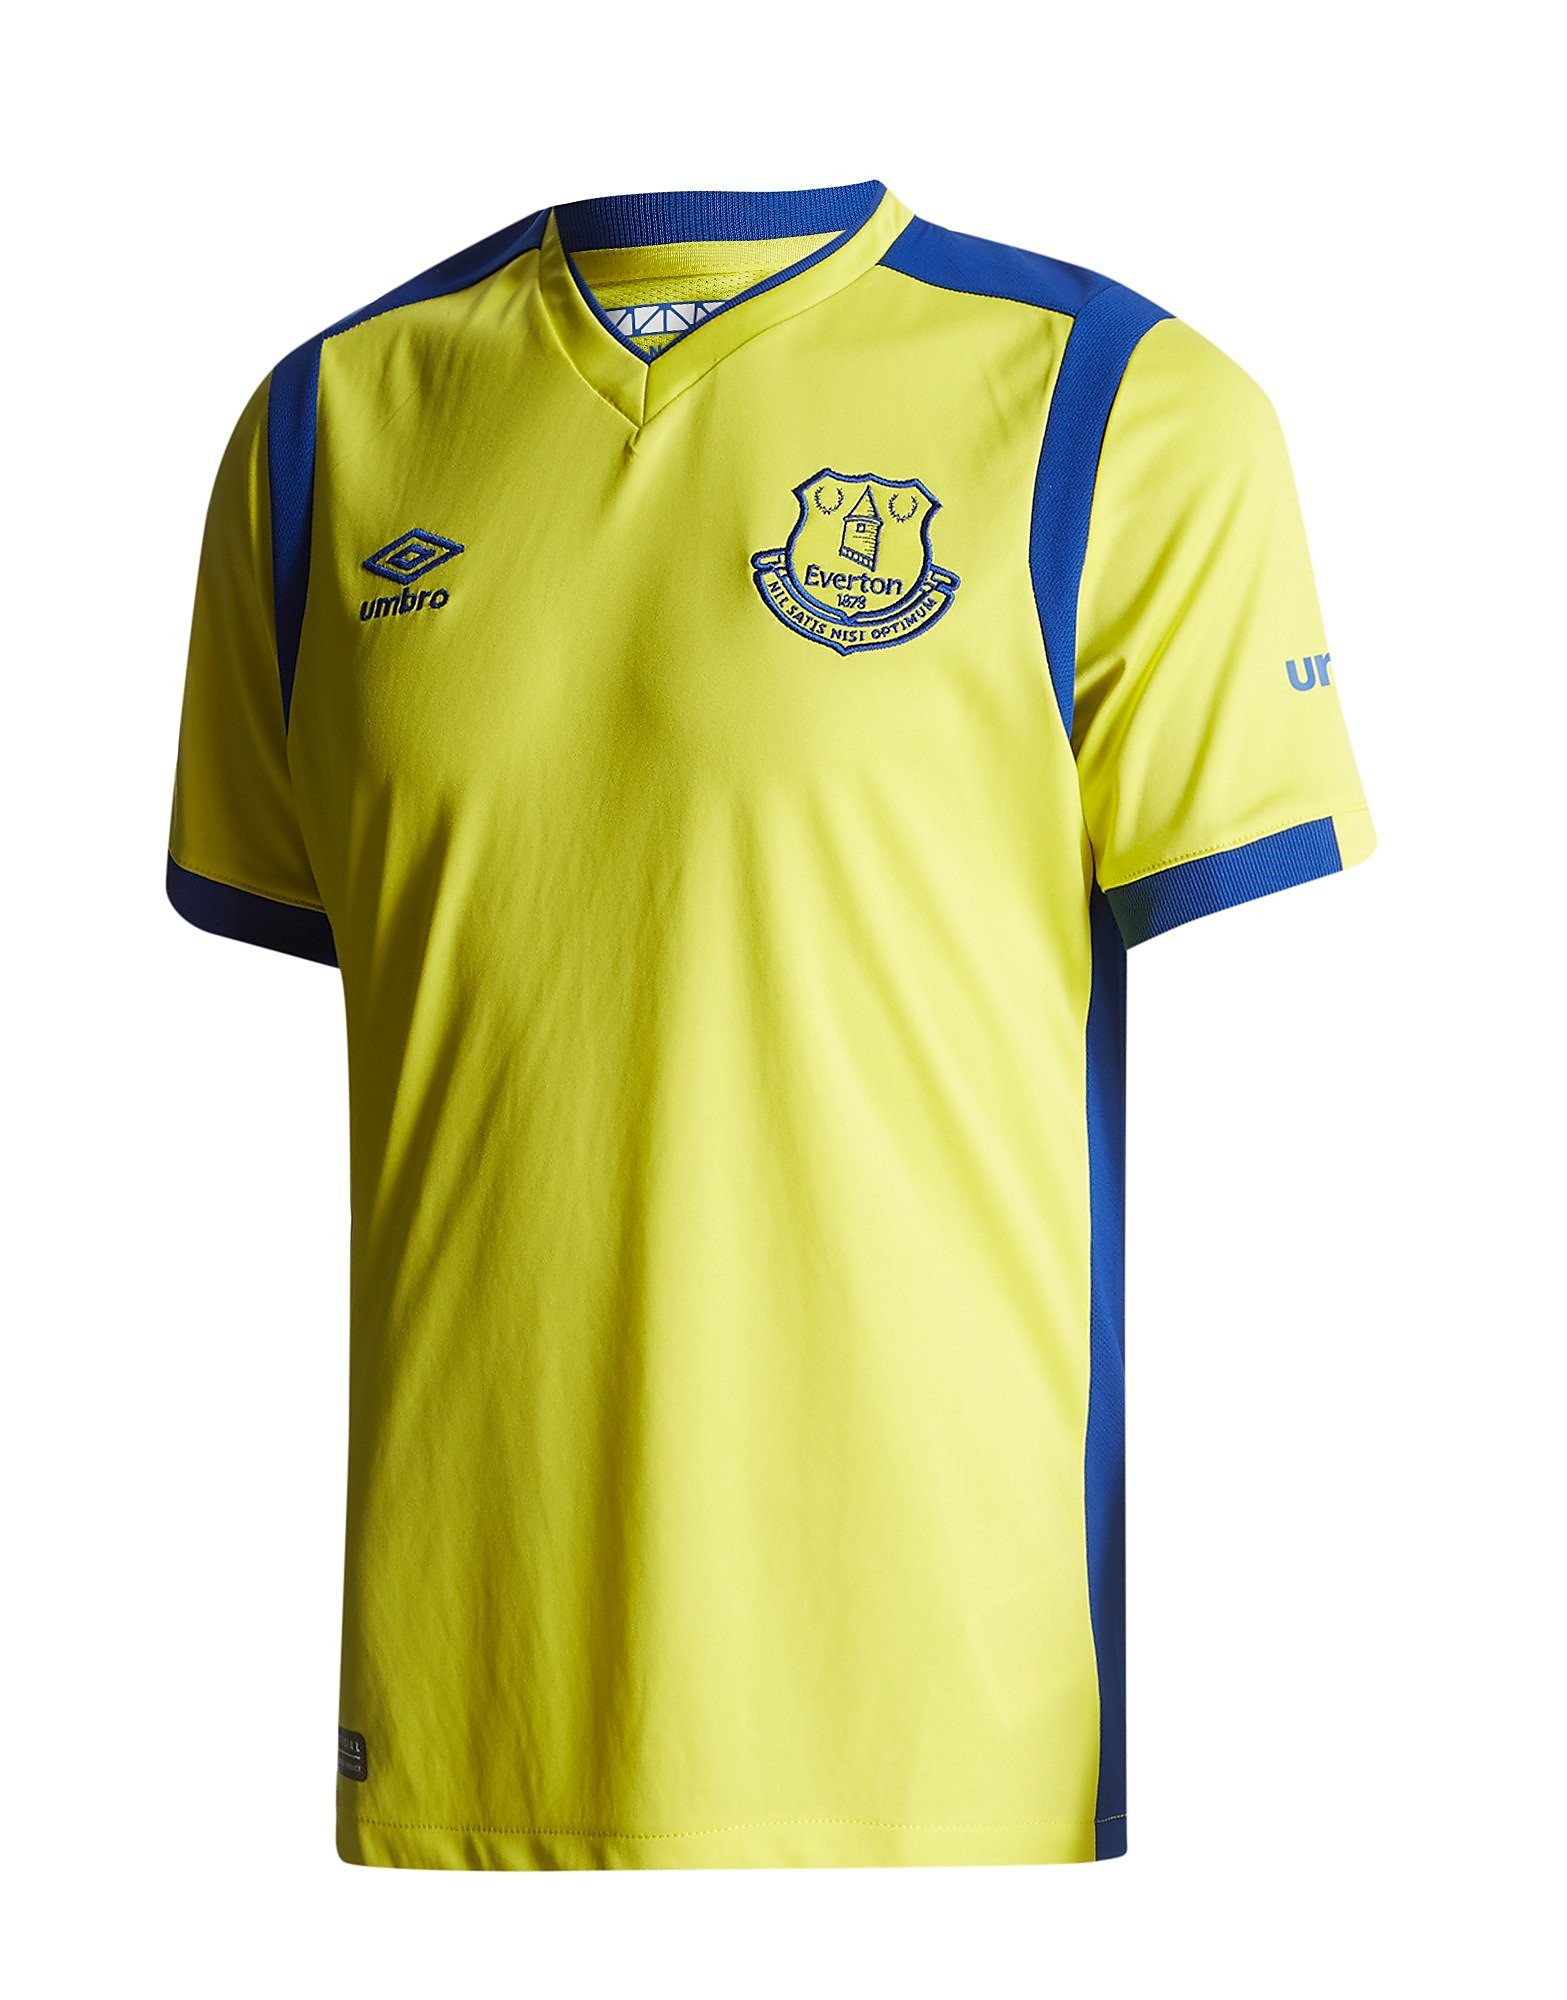 Umbro Everton FC 2016/17 Third Shirt Junior